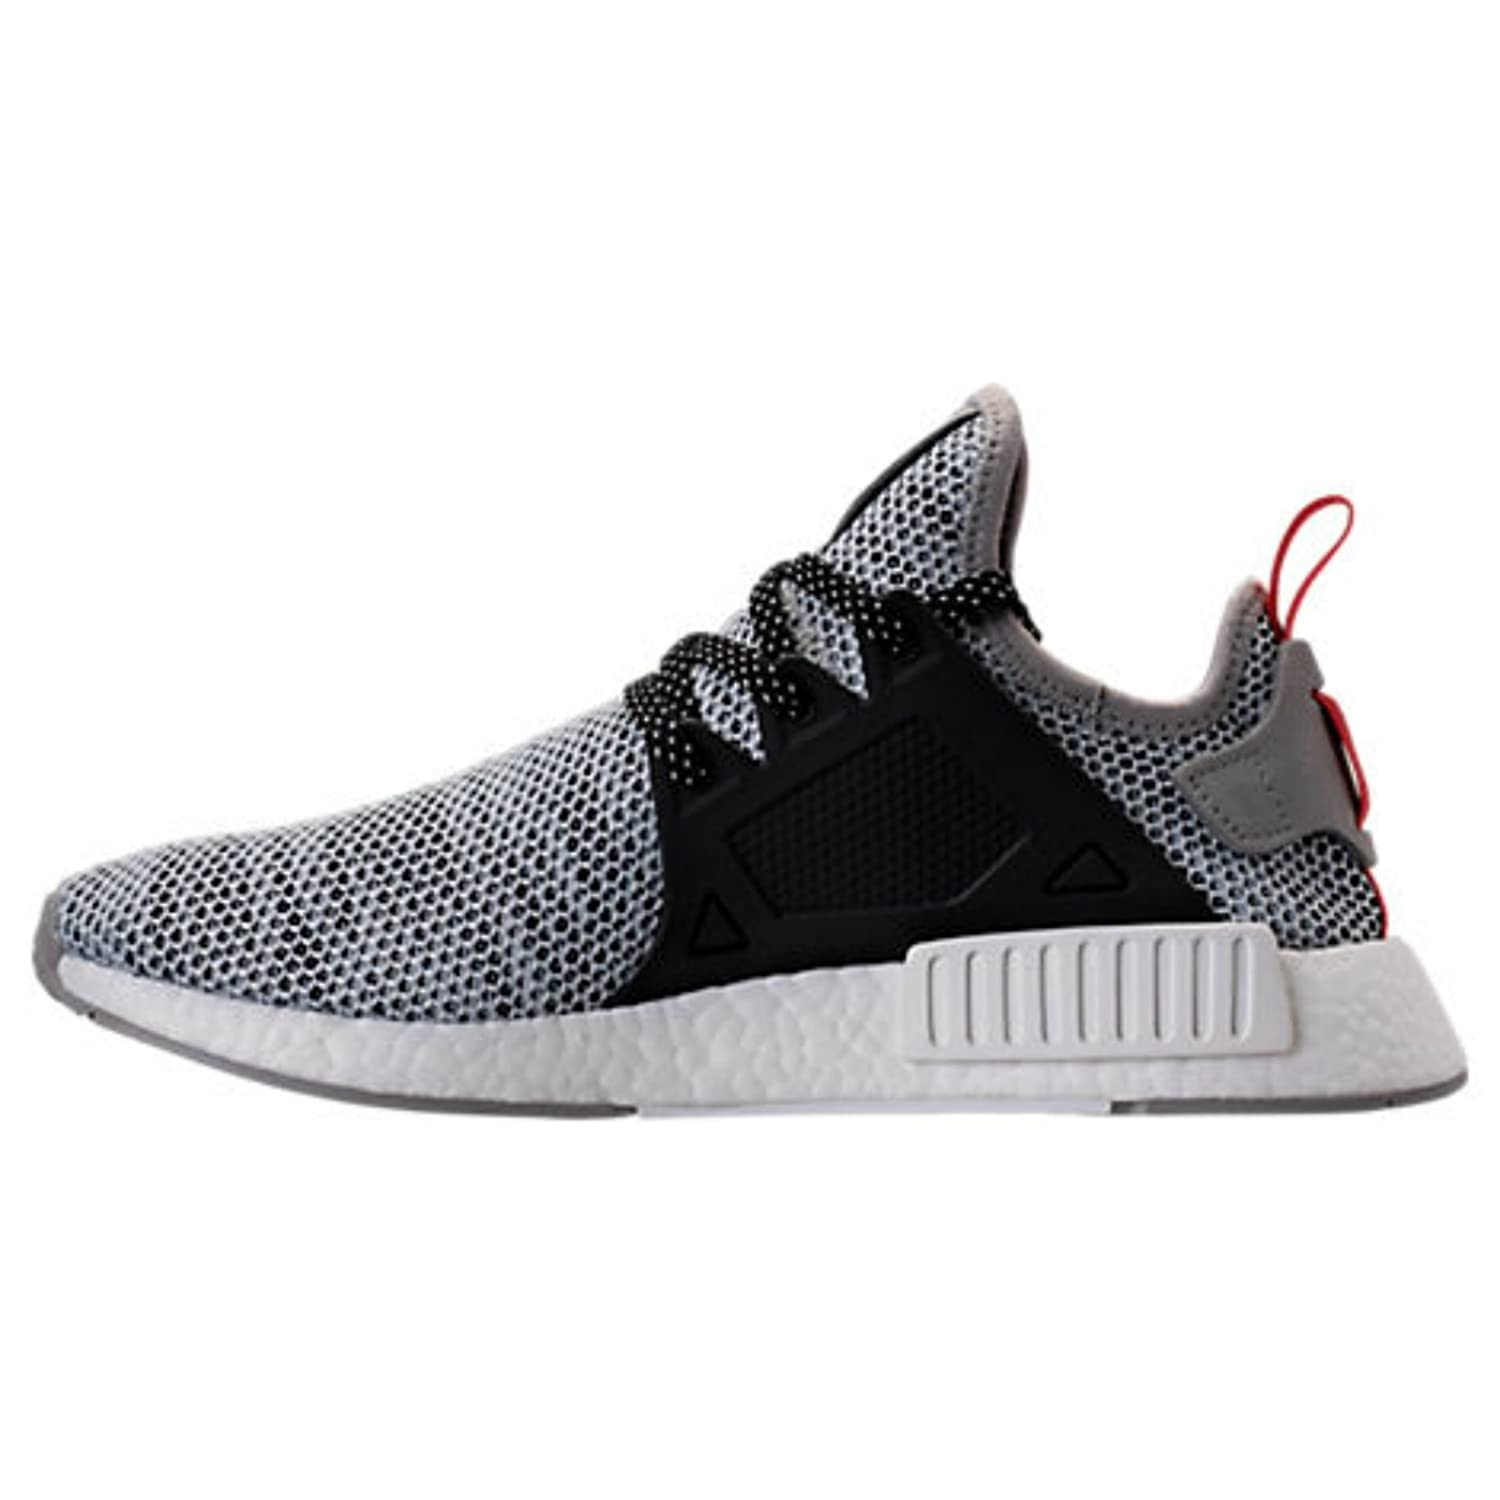 Zapatos Casuales Para Hombre Adidas Corredor Nmd Xr1 Onix Gris / Negro Hqc1m8x